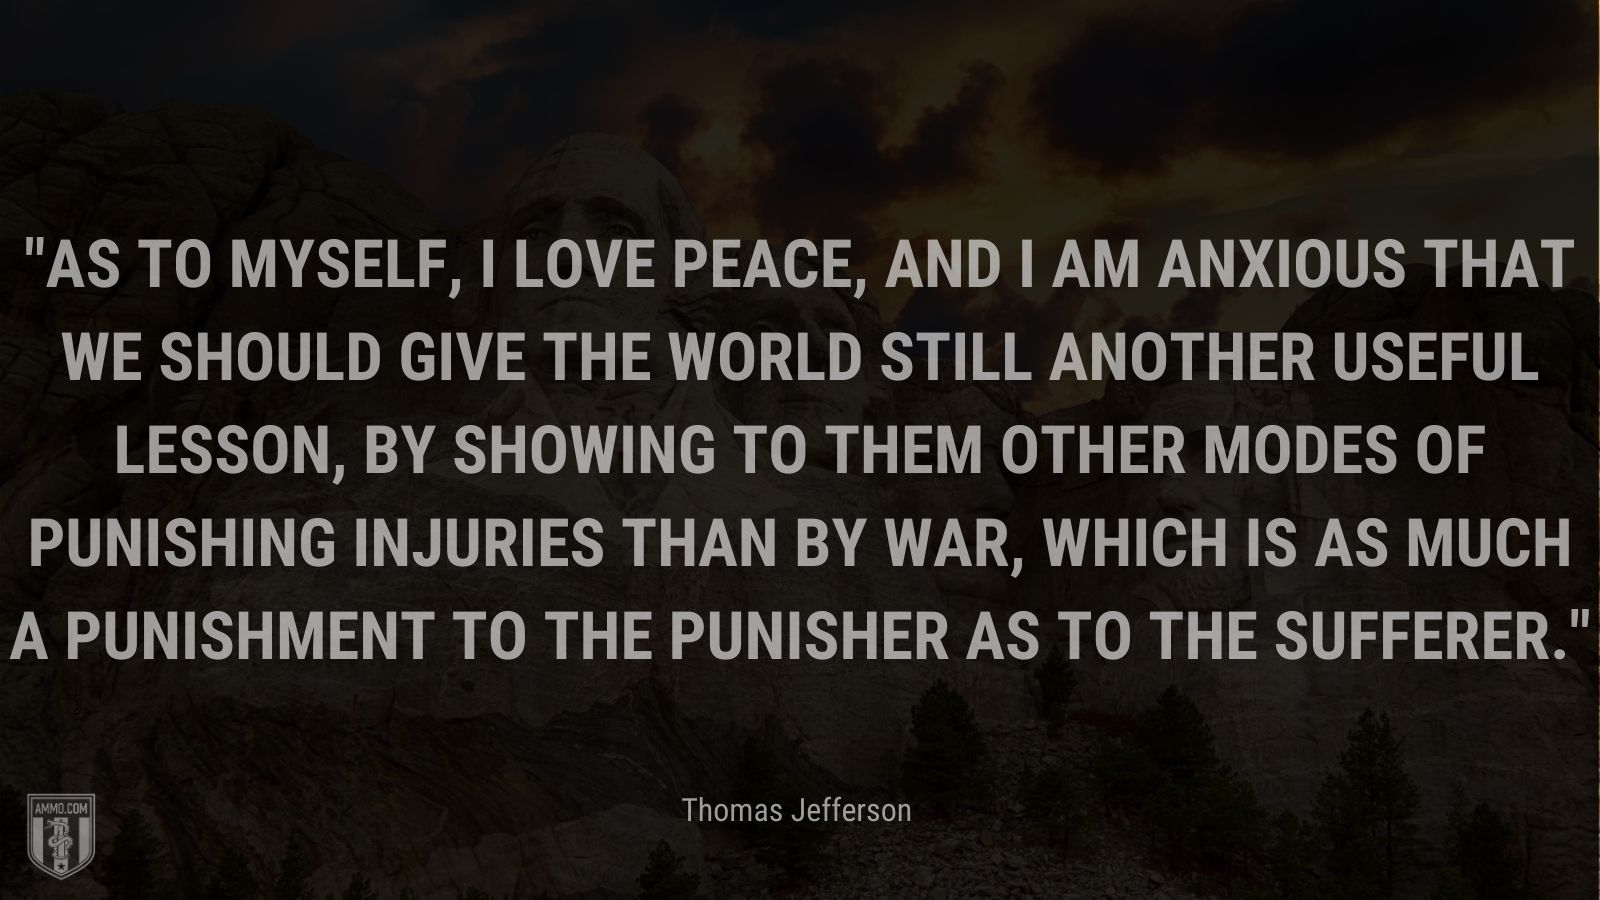 """""""As to myself, I love peace, and I am anxious that we should give the world still another useful lesson, by showing to them other modes of punishing injuries than by war, which is as much a punishment to the punisher as to the sufferer."""" - Thomas Jefferson"""